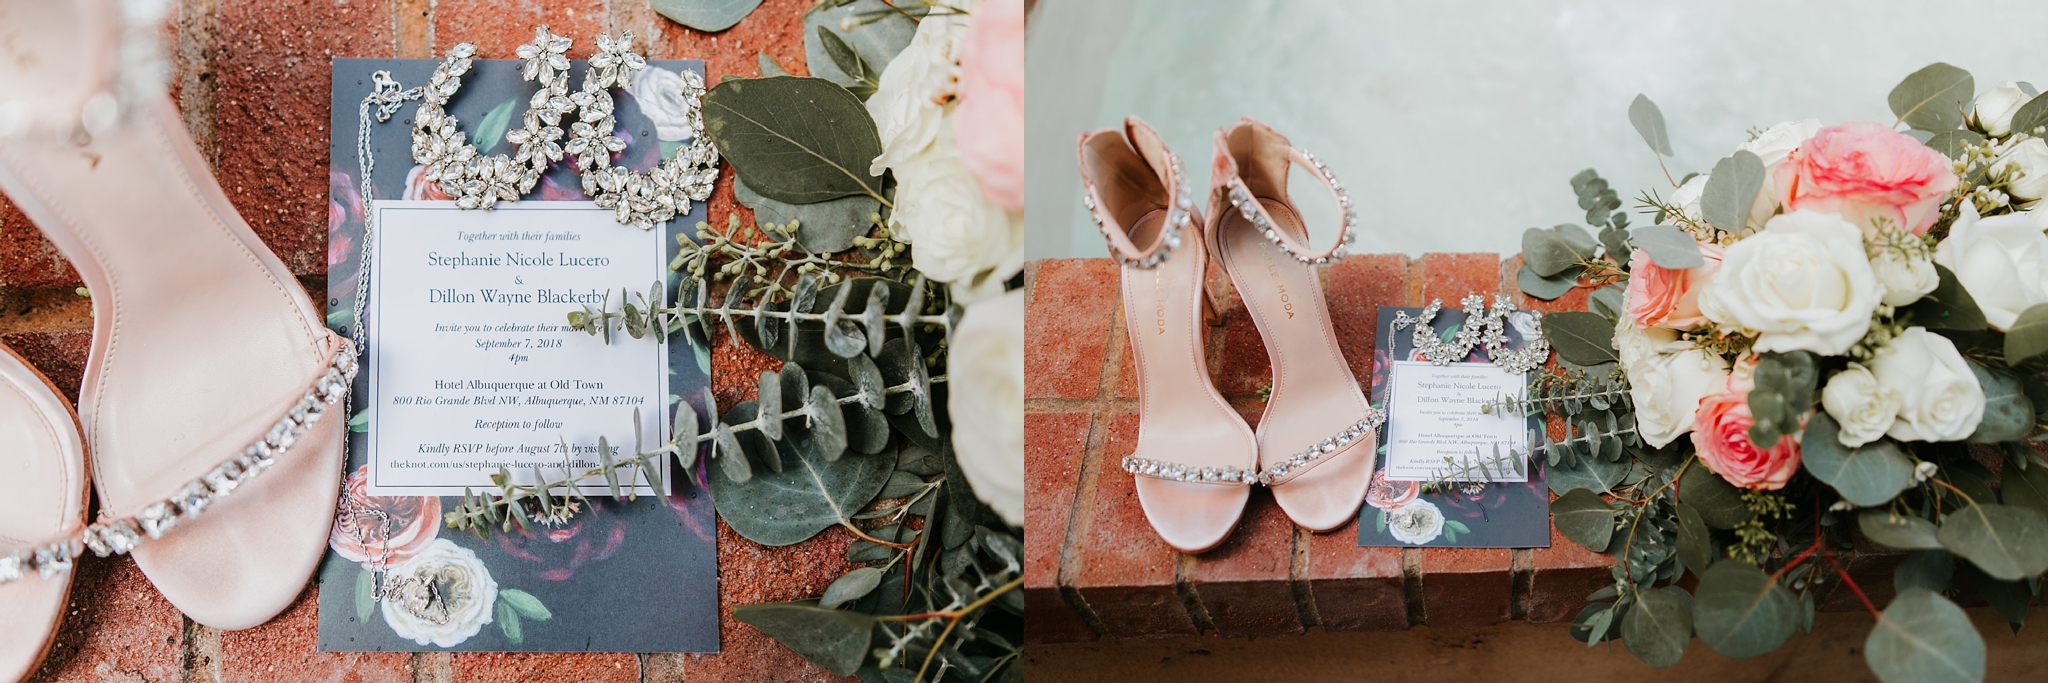 Alicia+lucia+photography+-+albuquerque+wedding+photographer+-+santa+fe+wedding+photography+-+new+mexico+wedding+photographer+-+new+mexico+wedding+-+wedding+invitations+-+invitation+suite+-+wedding+inspo_0062.jpg